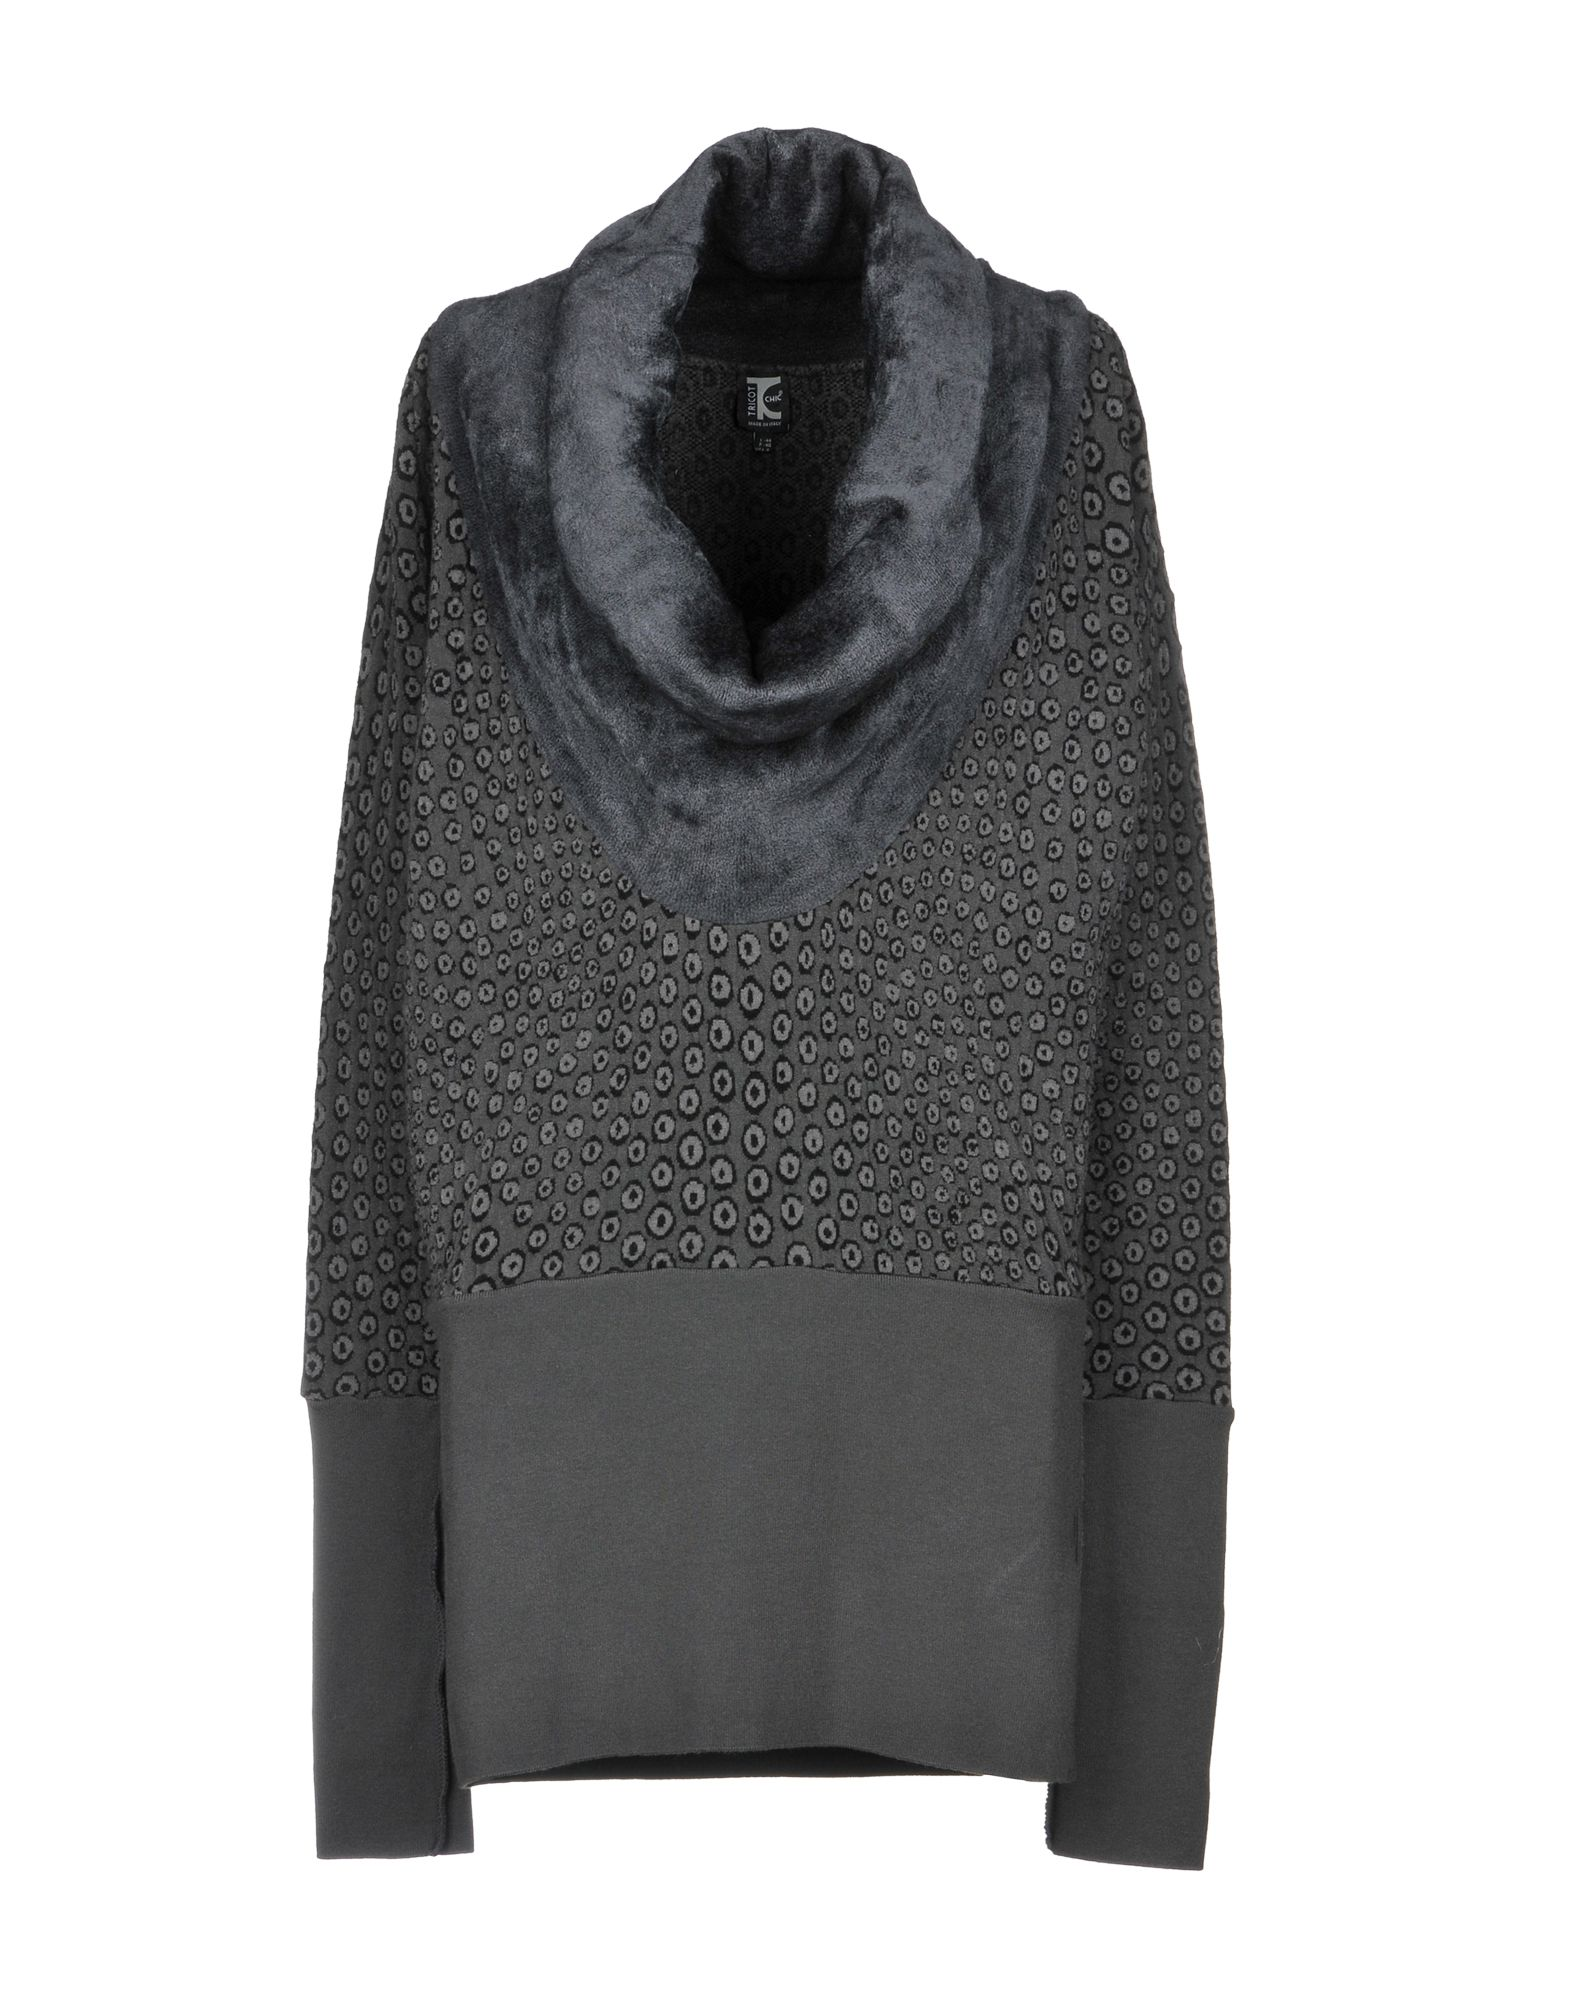 TRICOT CHIC Водолазки